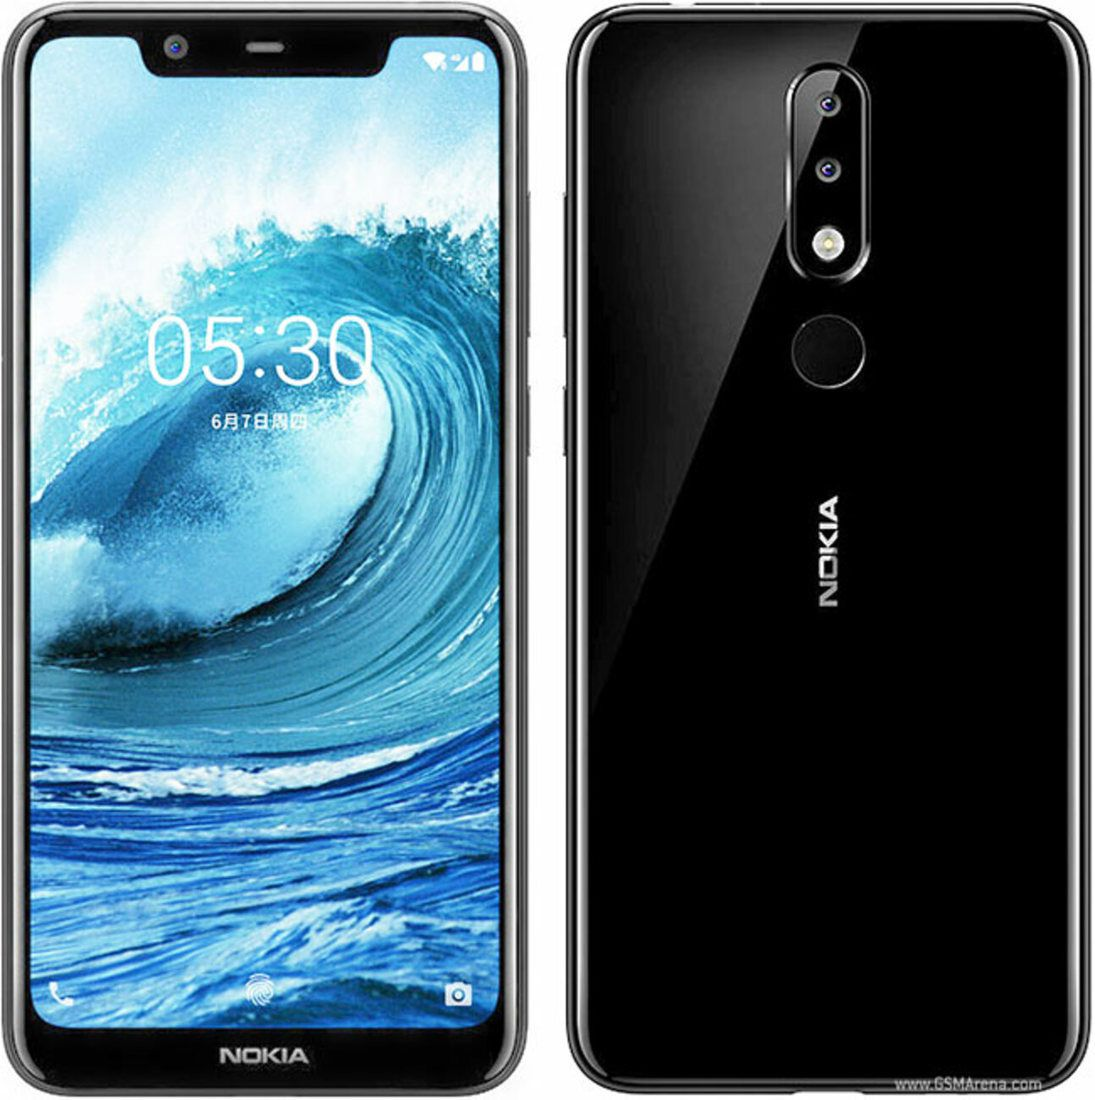 Smartphone Nokia 5.1 Plus 3GB Ram Tela 5.86 32GB Camera Dupla 13+5MP - Preto